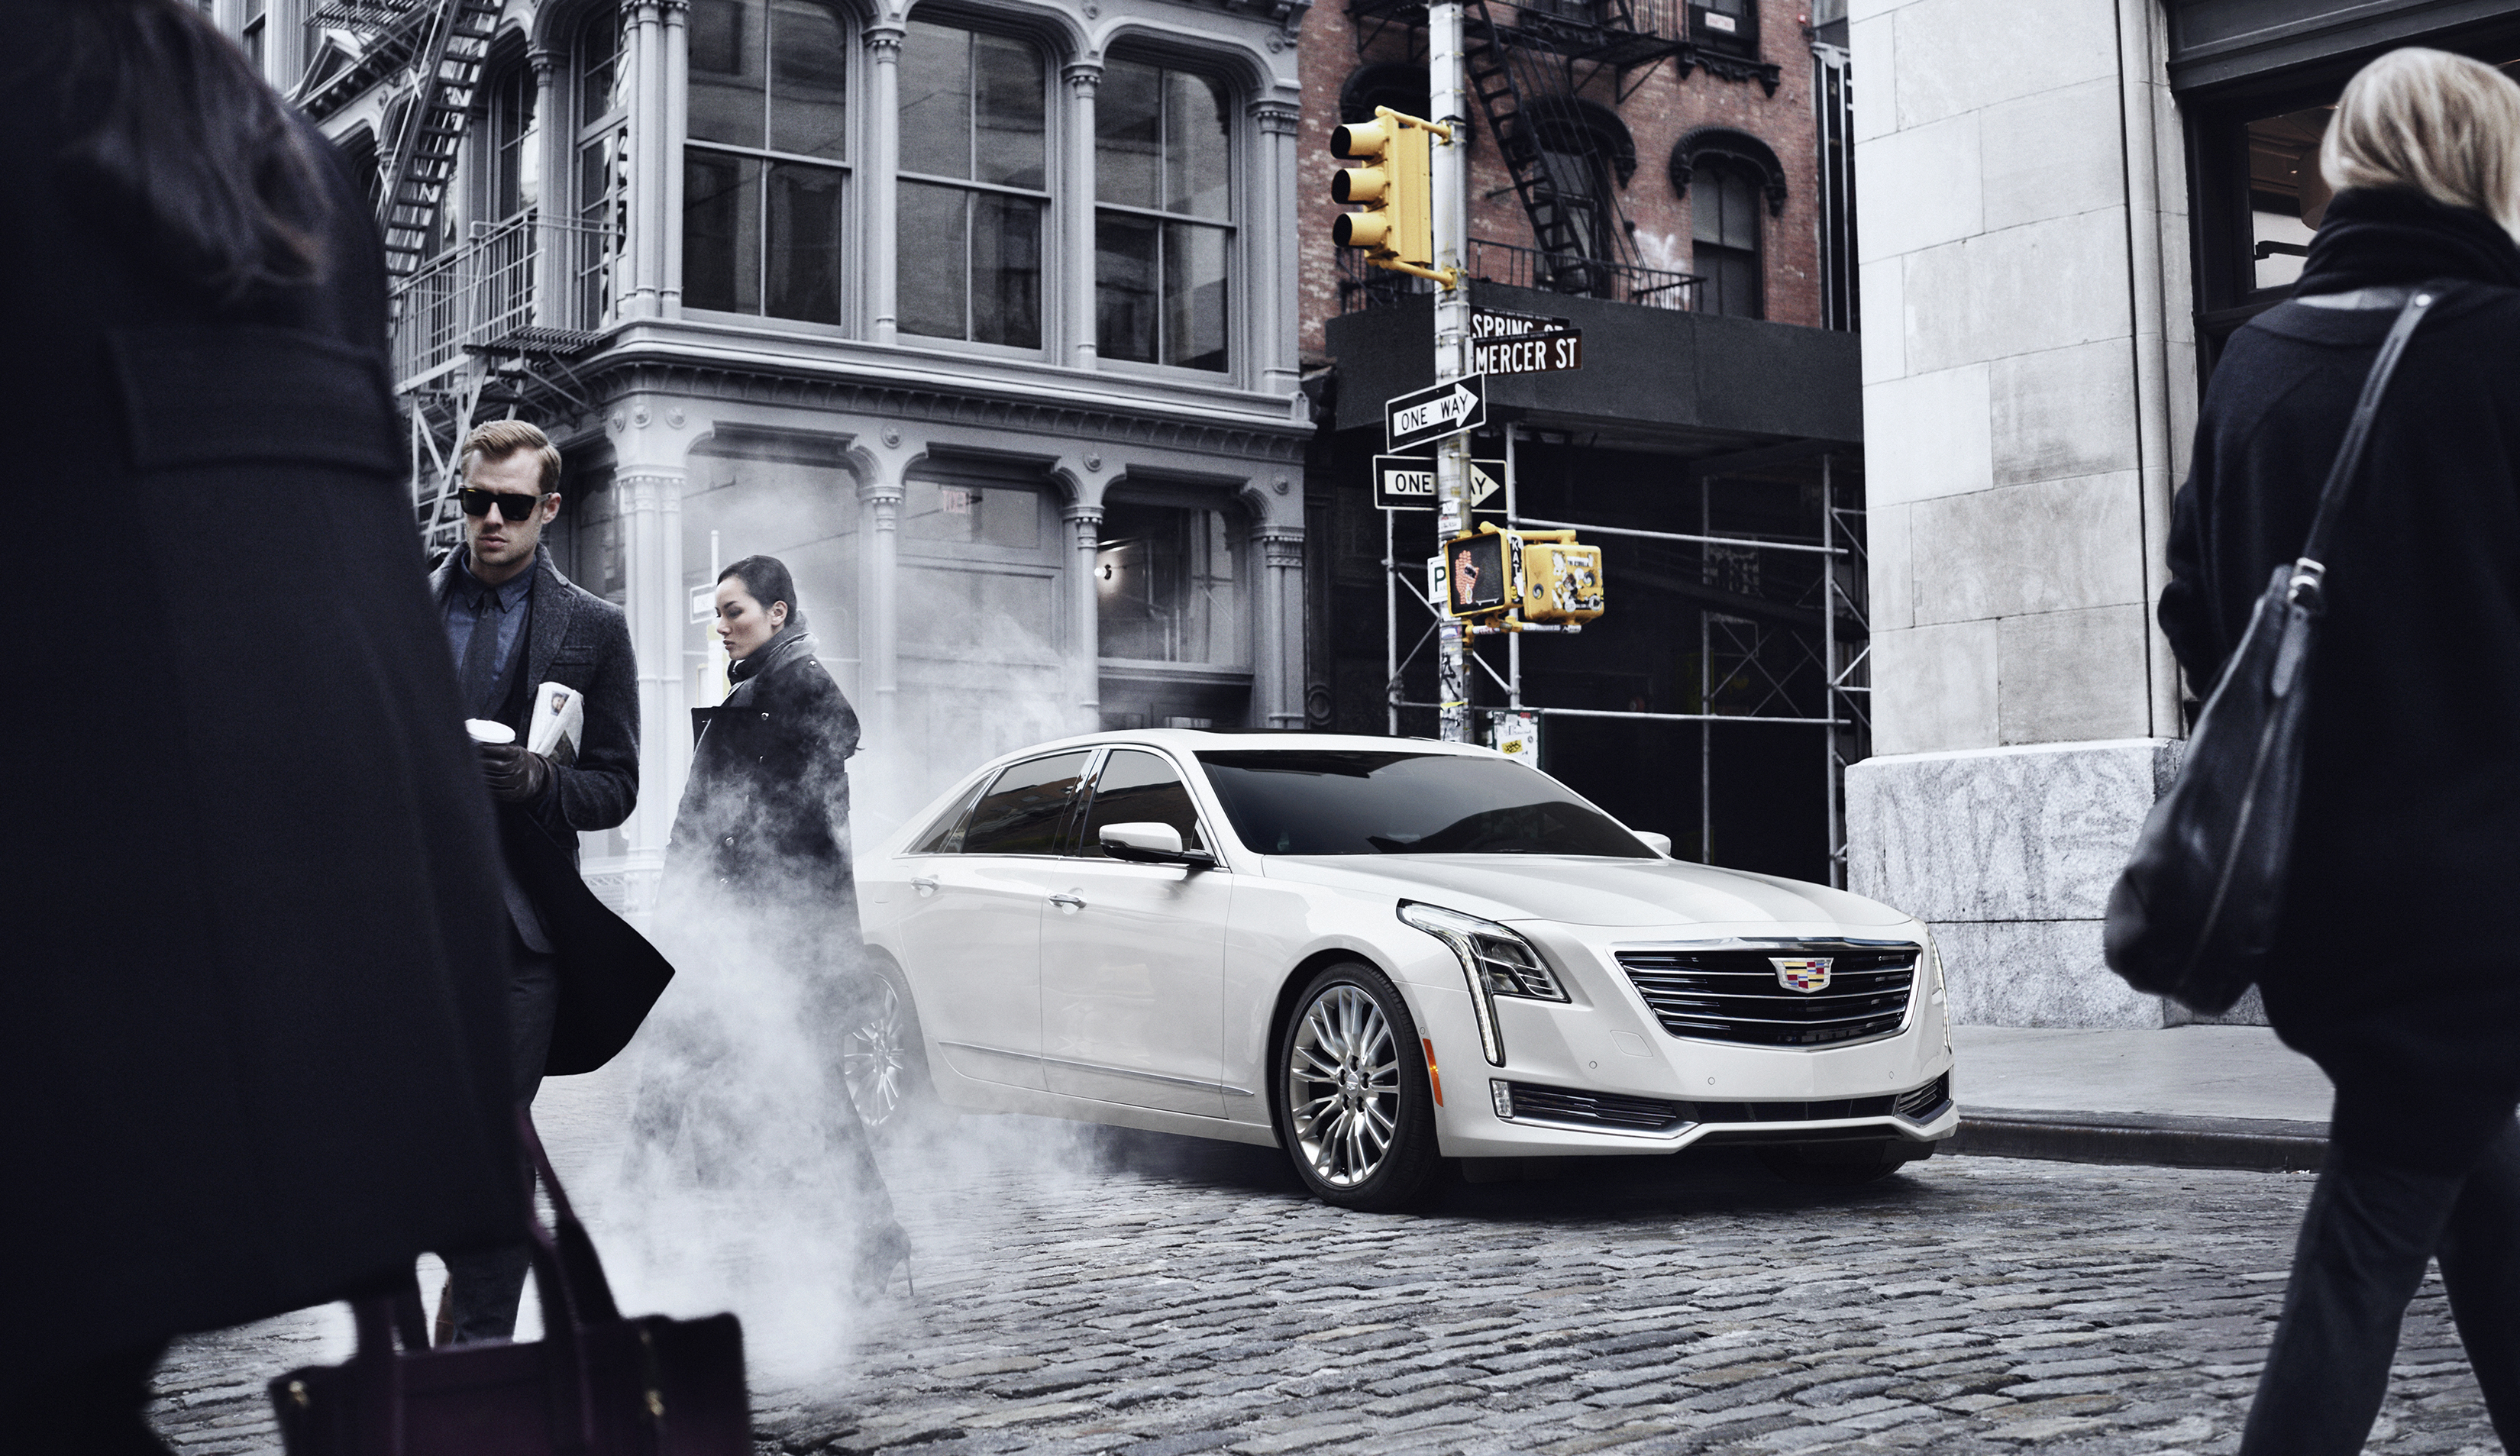 Auction of first new retail 2016 cadillac ct6 raises 200 000 to benefit karmanos cancer institute